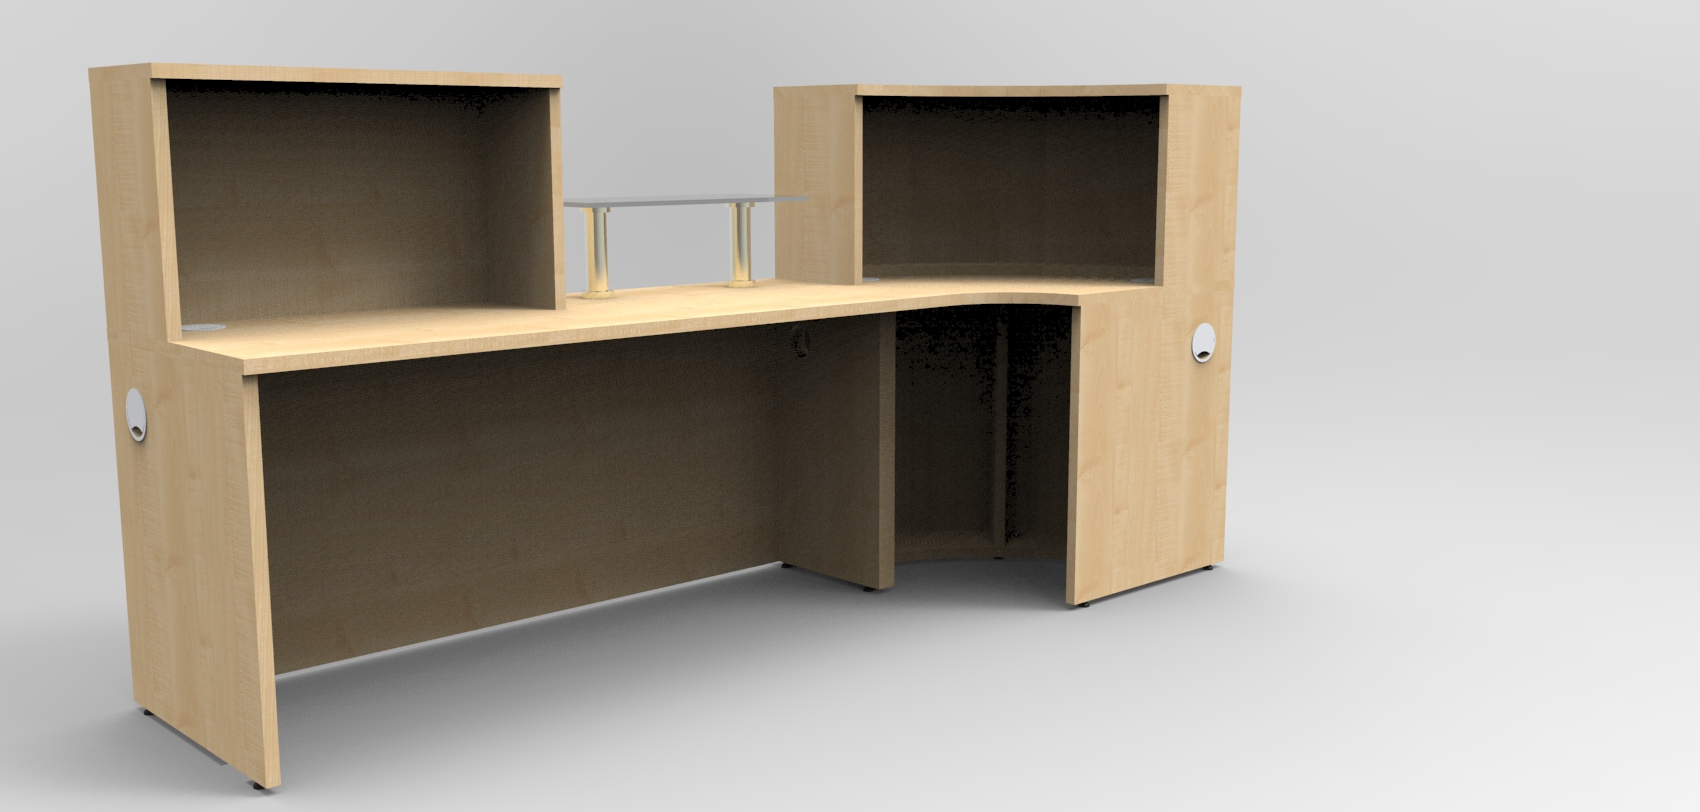 Render - Bespoke Maple reception desk with glass shelf